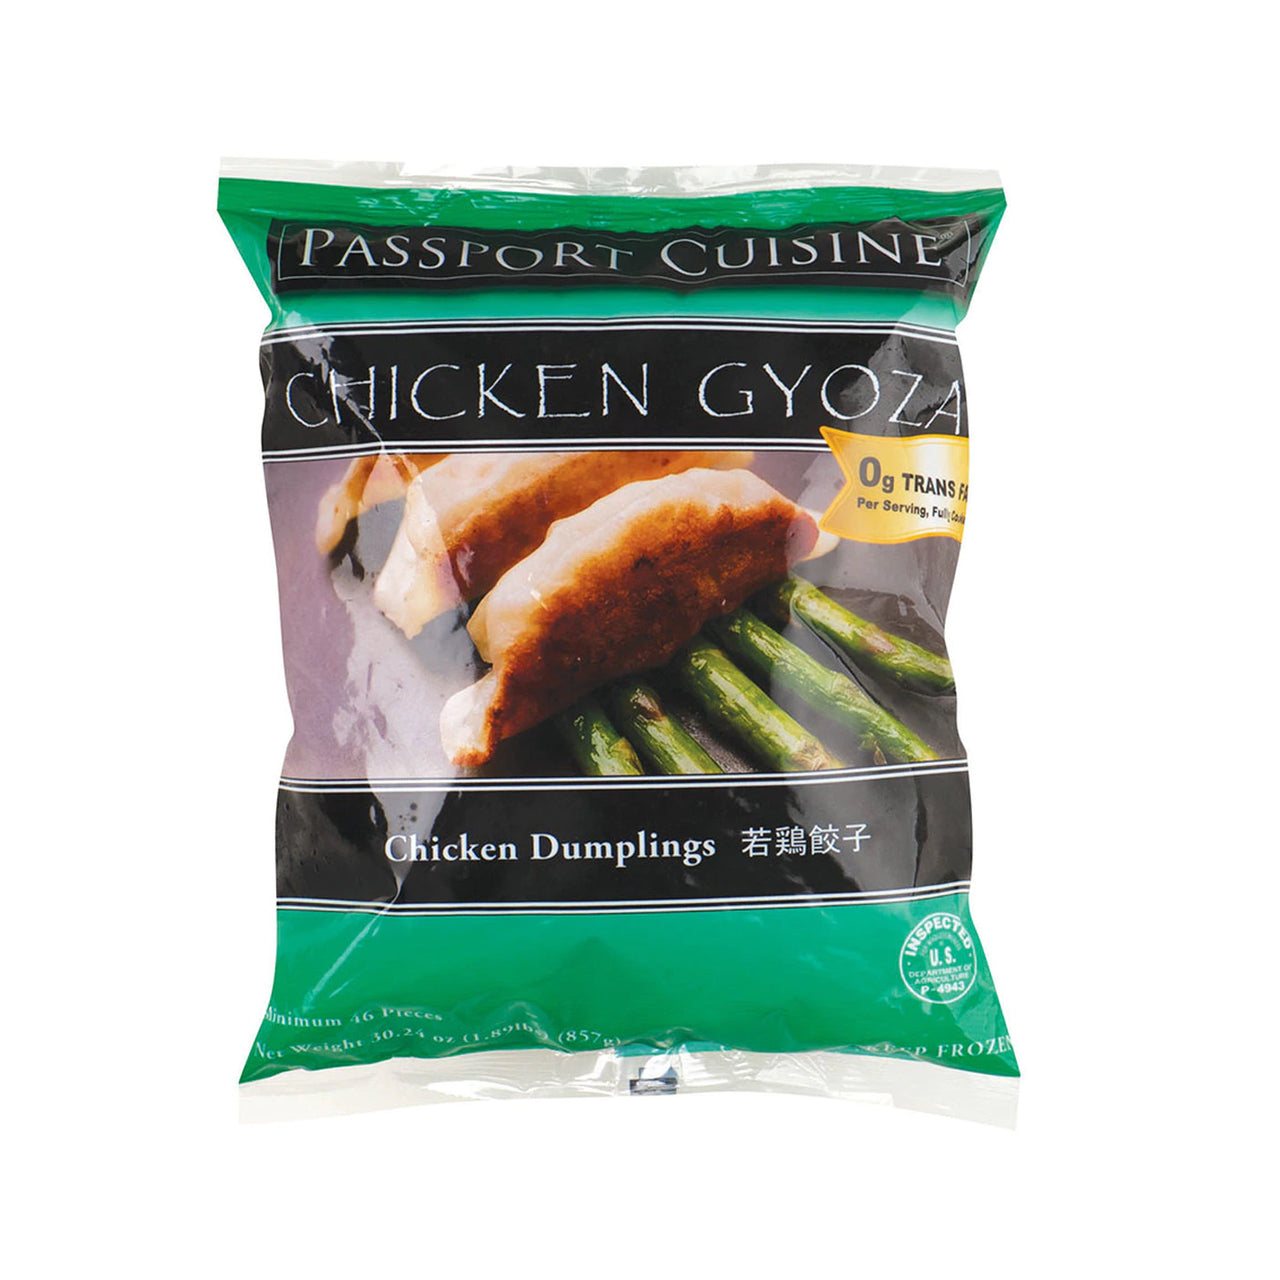 No-MSG Chicken Gyoza Dumpling 46-50pcs 1.89lbs (857g) (SKU: 74315)